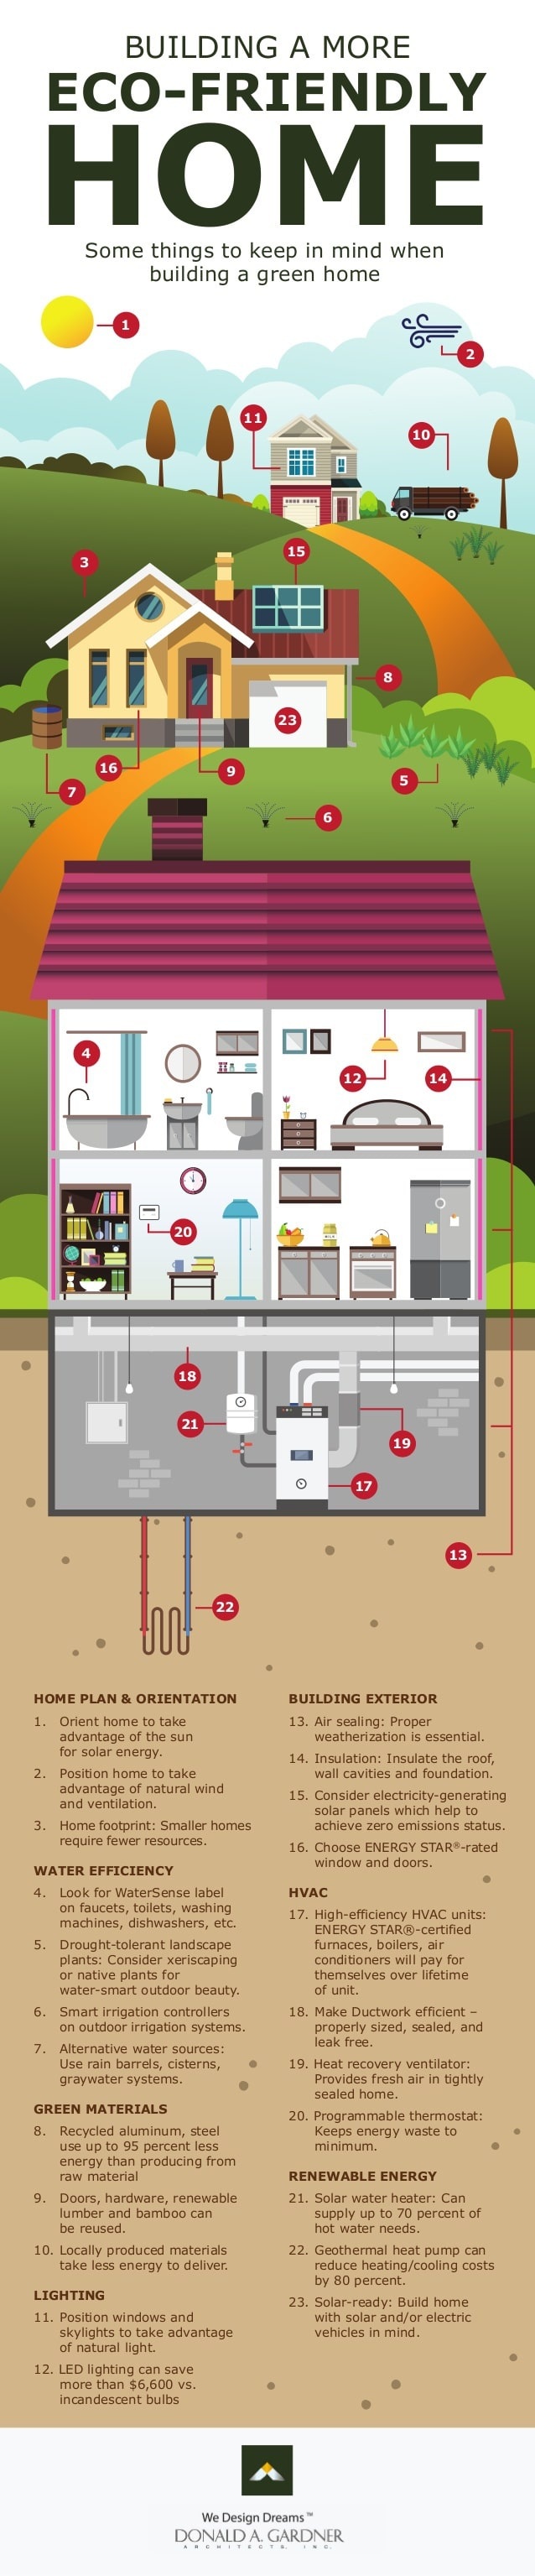 Building a More Eco-Friendly Home Infographic